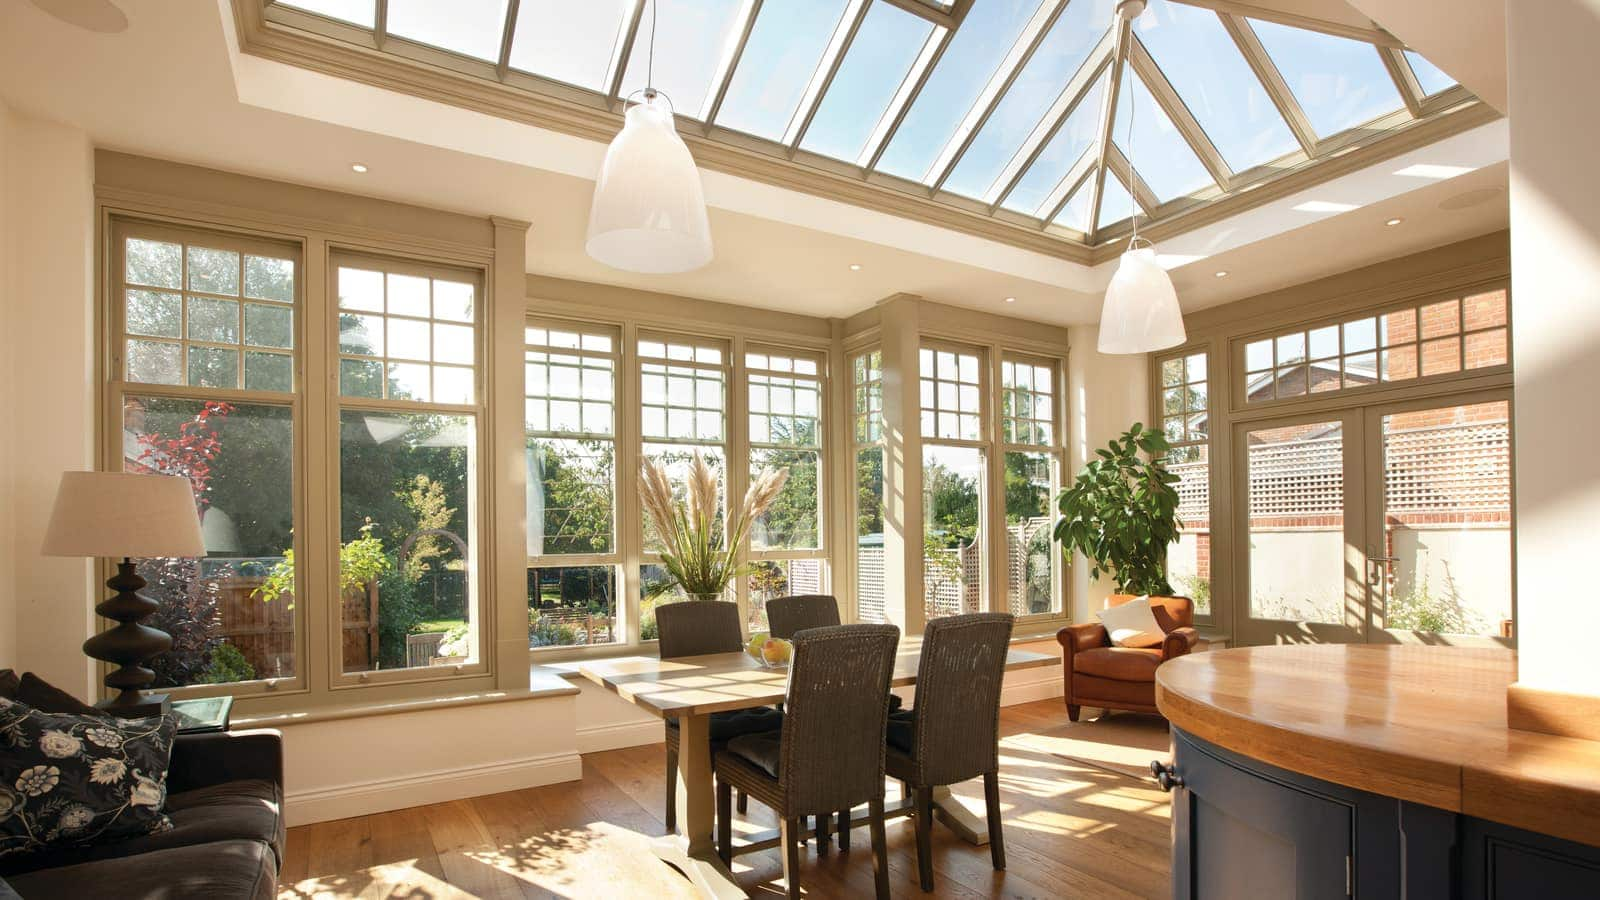 Dining and sitting area in new orangery, with large roof lantern